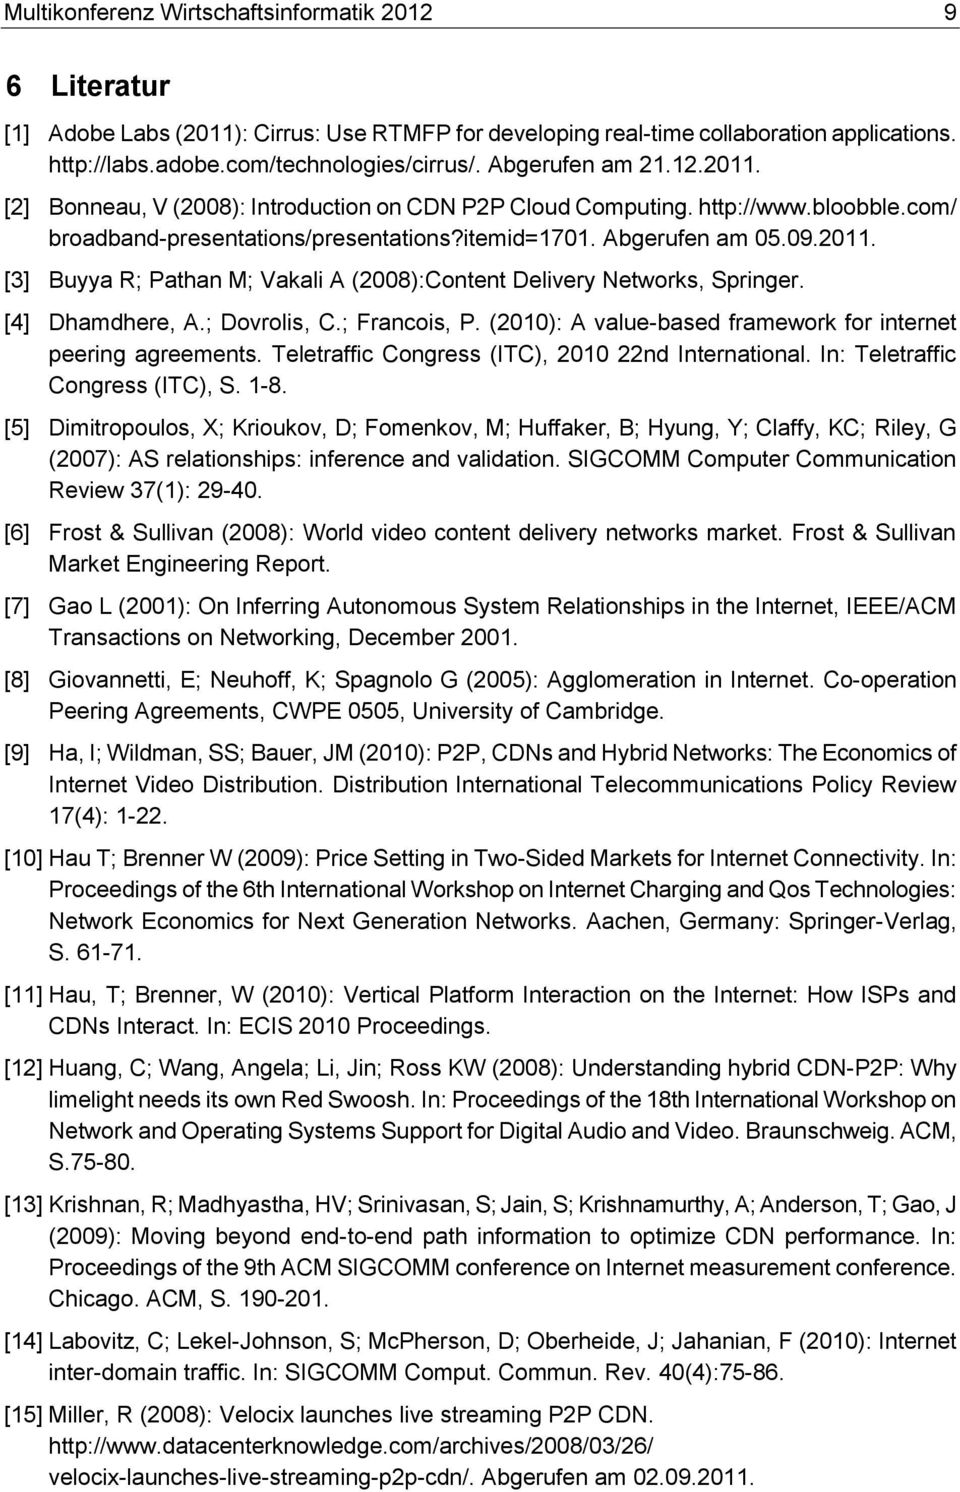 [4] Dhamdhere, A.; Dovrolis, C.; Francois, P. (2010): A value-based framework for internet peering agreements. Teletraffic Congress (ITC), 2010 22nd International. In: Teletraffic Congress (ITC), S.